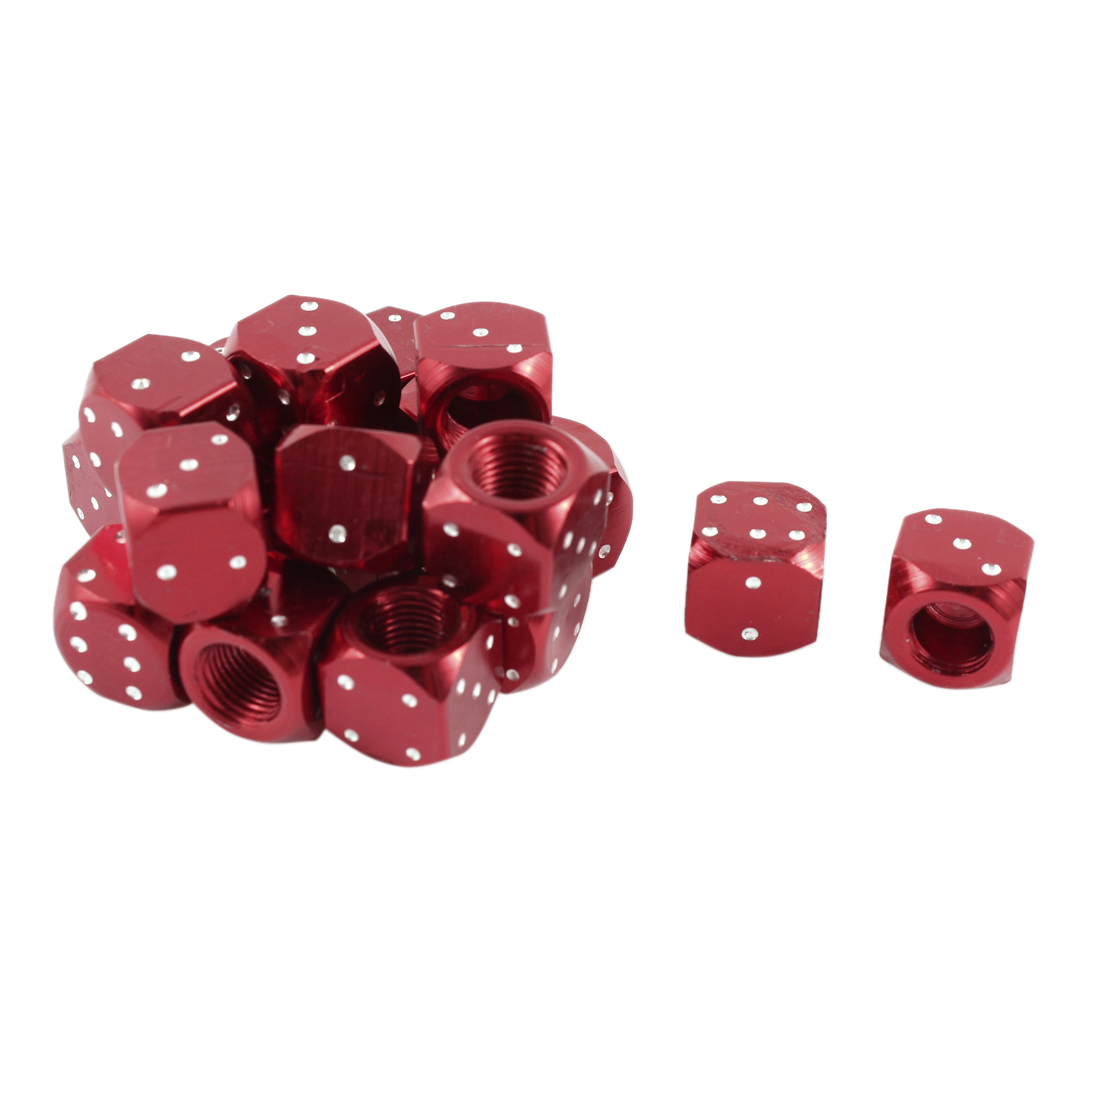 20 Pcs Motorcycle Red Dice Design Square Head Tyre Tire Valve Stem Caps Covers